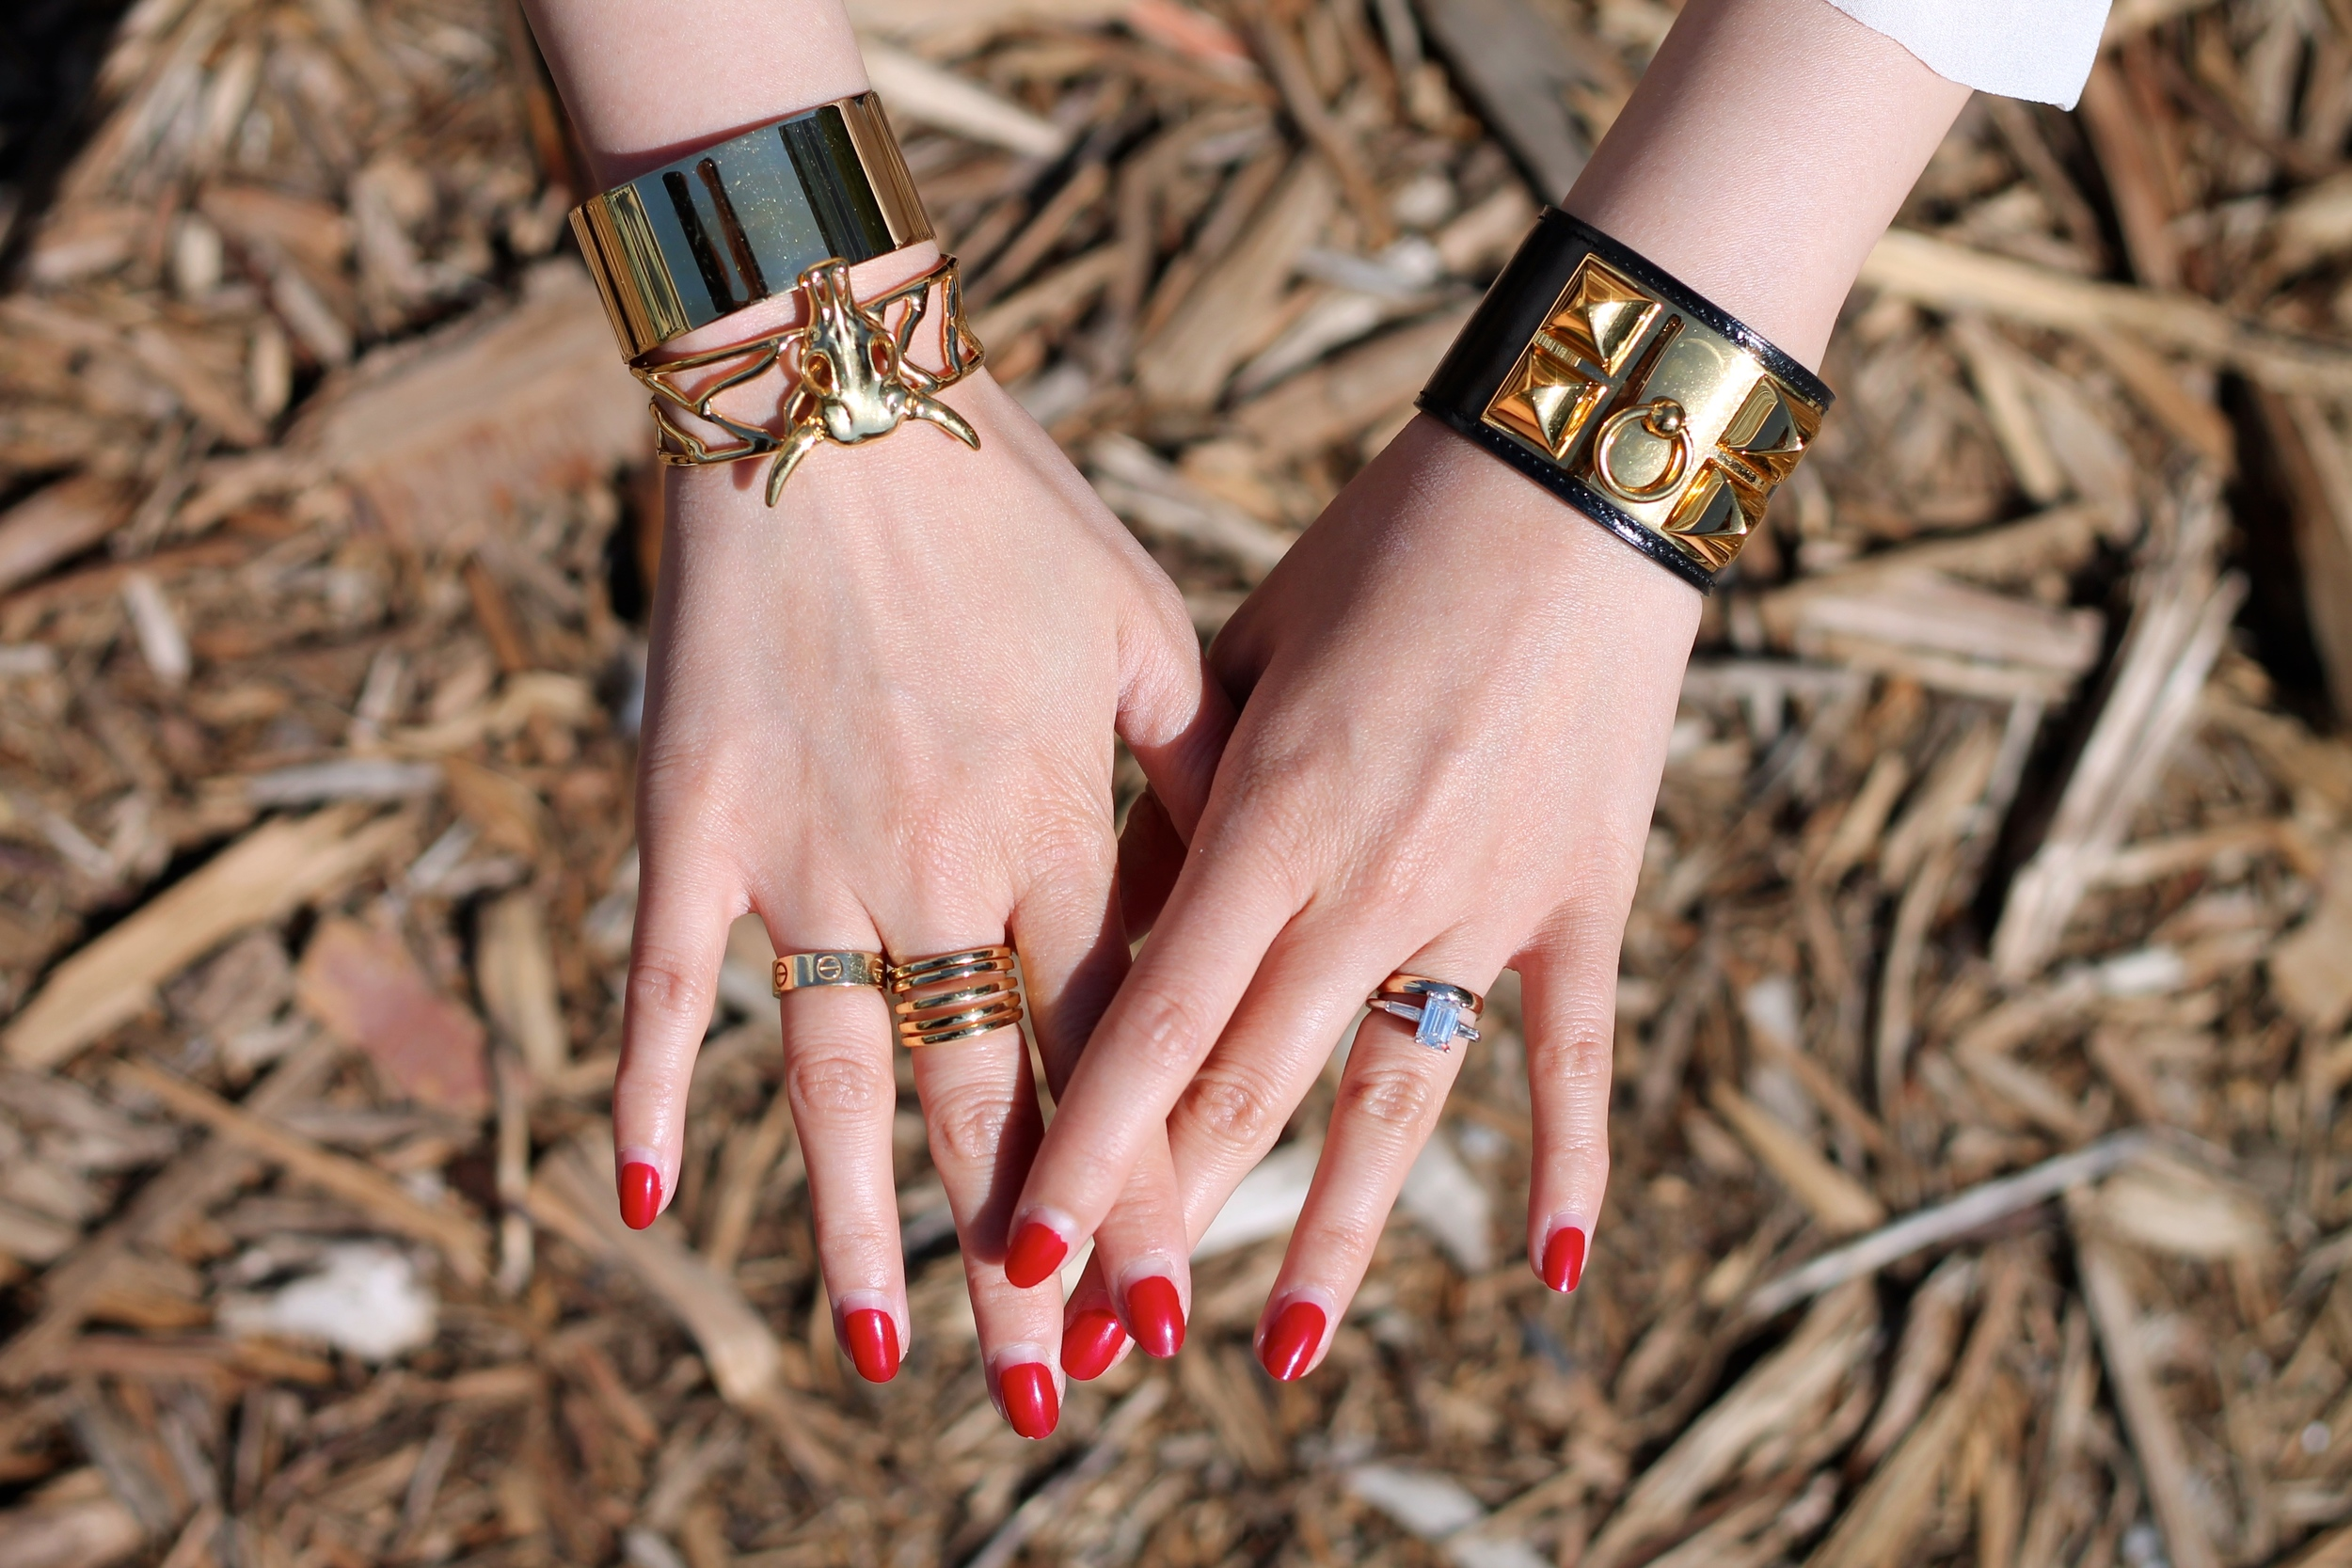 Svelte Metals  and  Hermes  bracelets, Cartier,  Svelte Metals  and my own rings